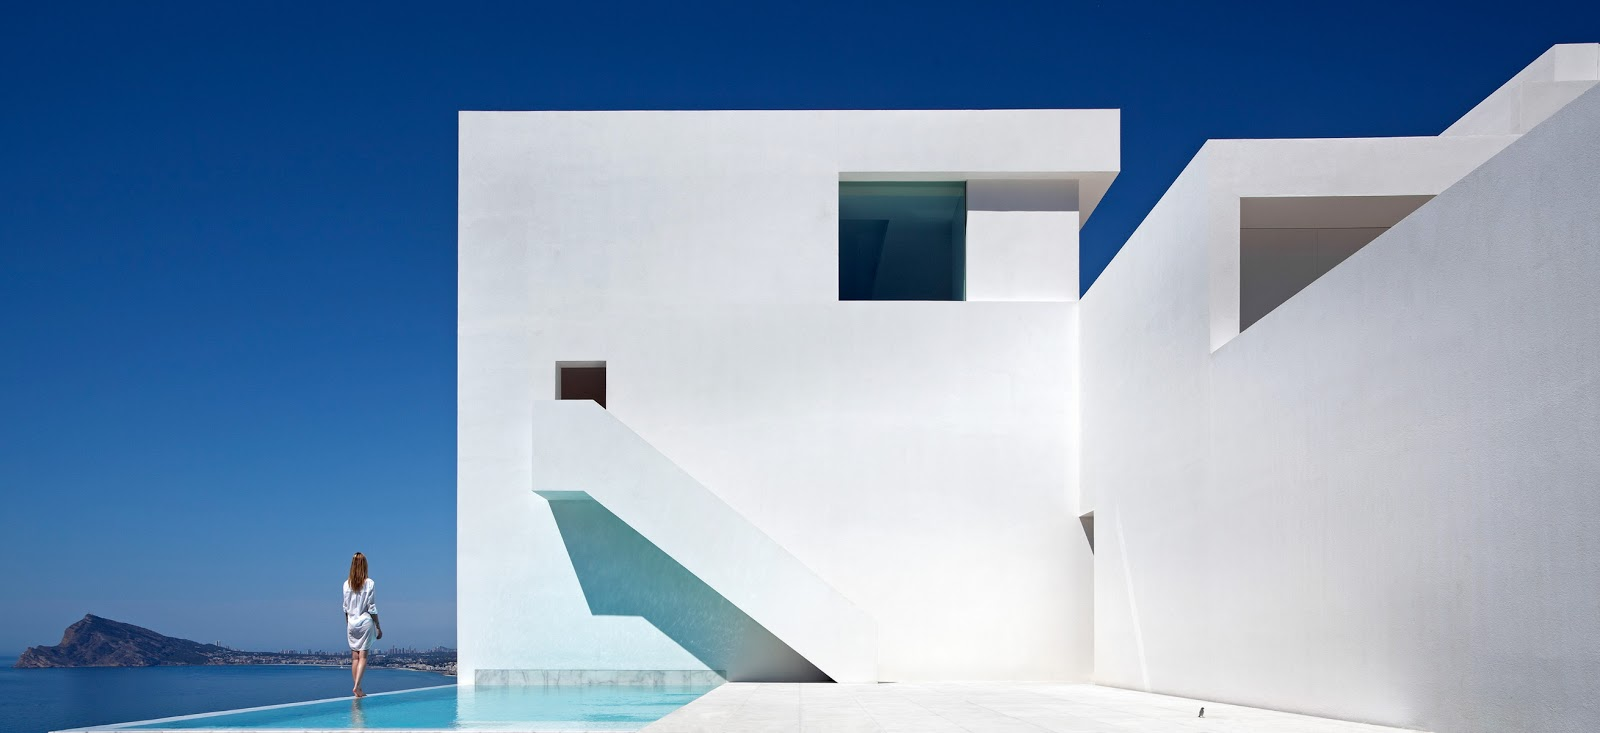 FRAN SILVESTRE ARQUITECTOS VALENCIA - HOUSE ON THE CLIFF -  IMG ARQUITECTURA - 01.jpg